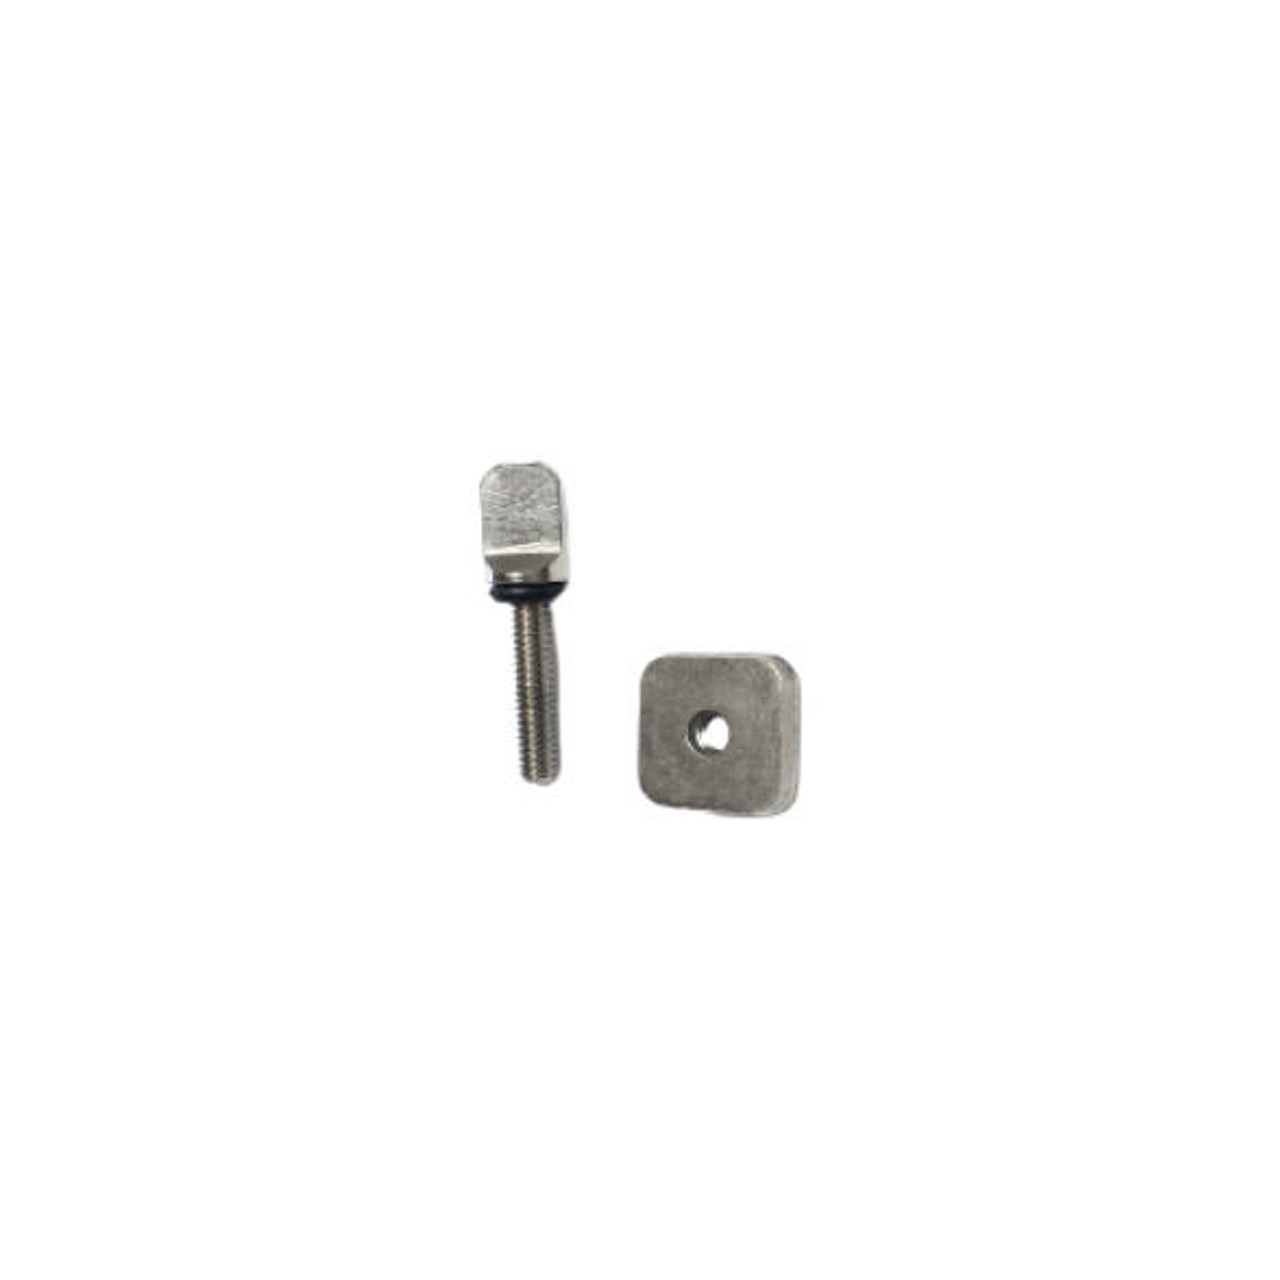 Bixpy Stainless Steel Fin Screw and Plate